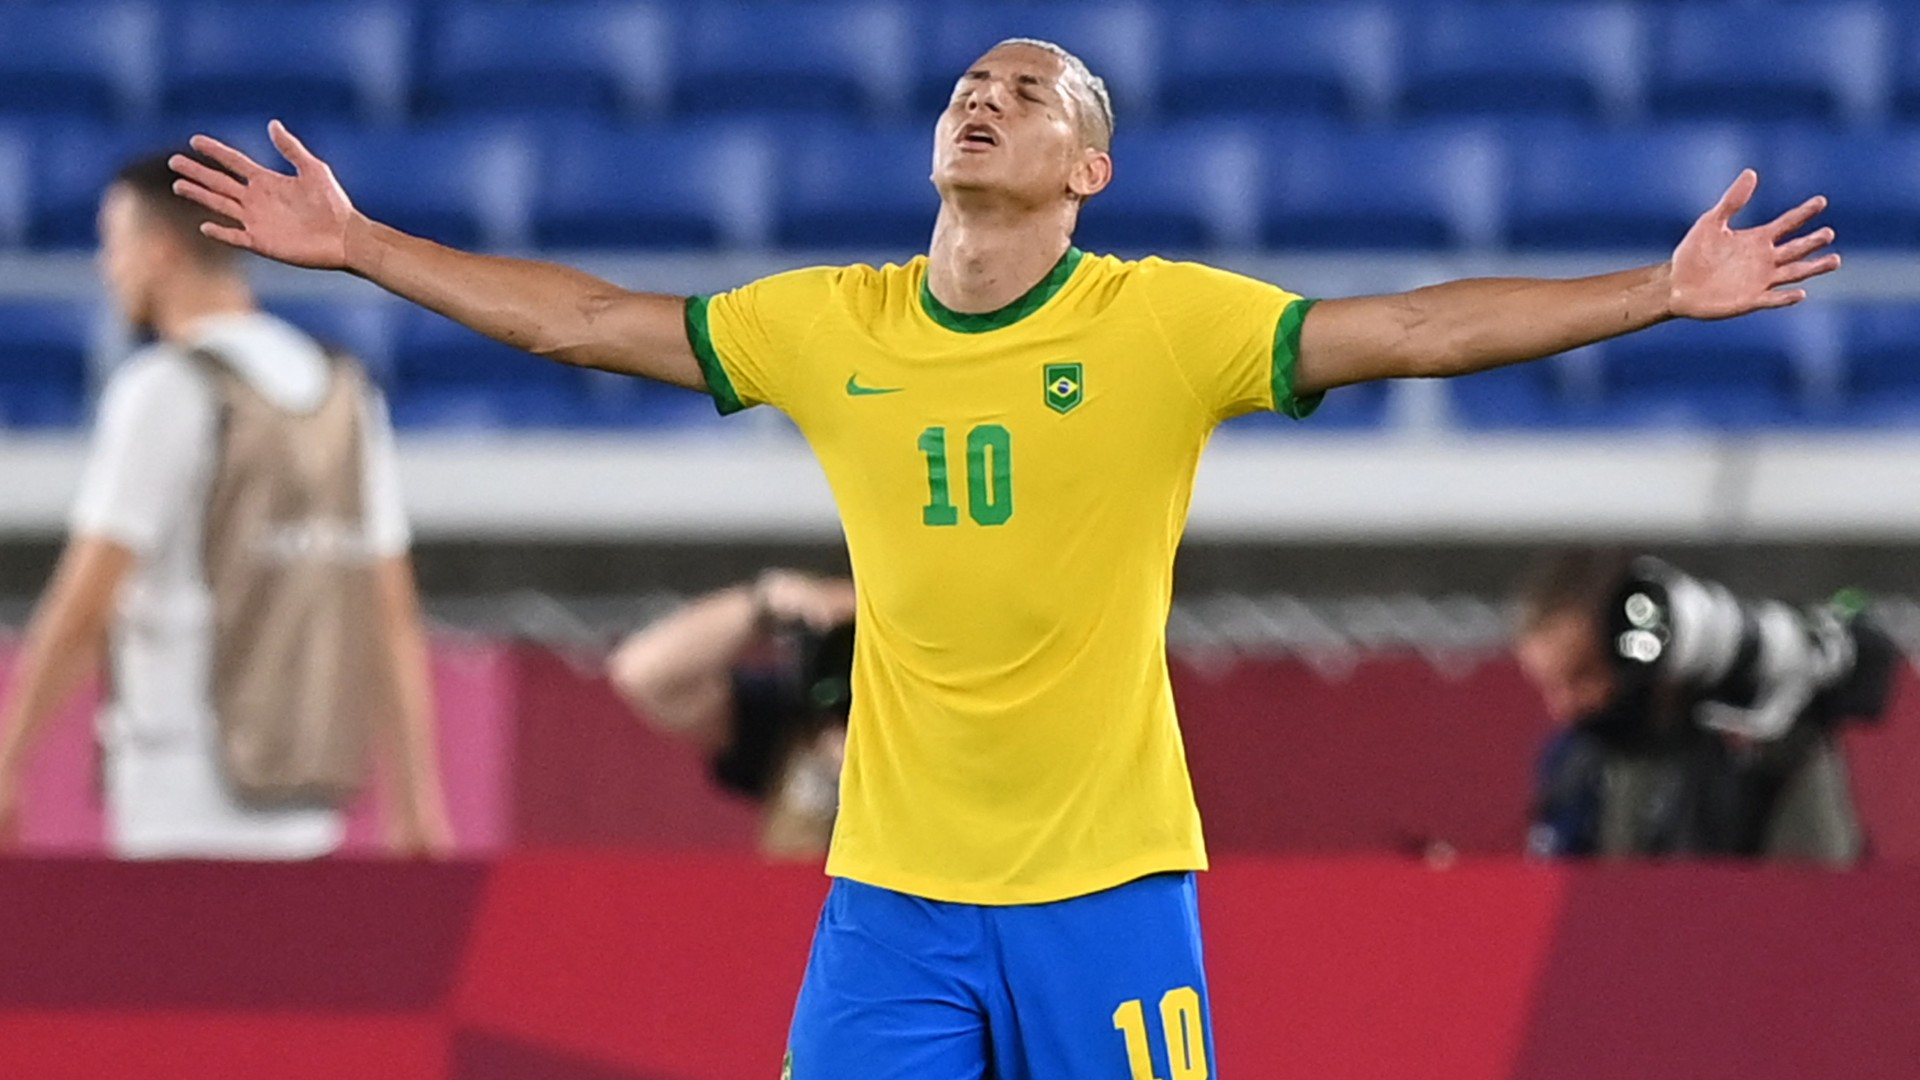 Richarlison makes Premier League history at Olympics 2020 as Everton star hits hat-trick for Brazil